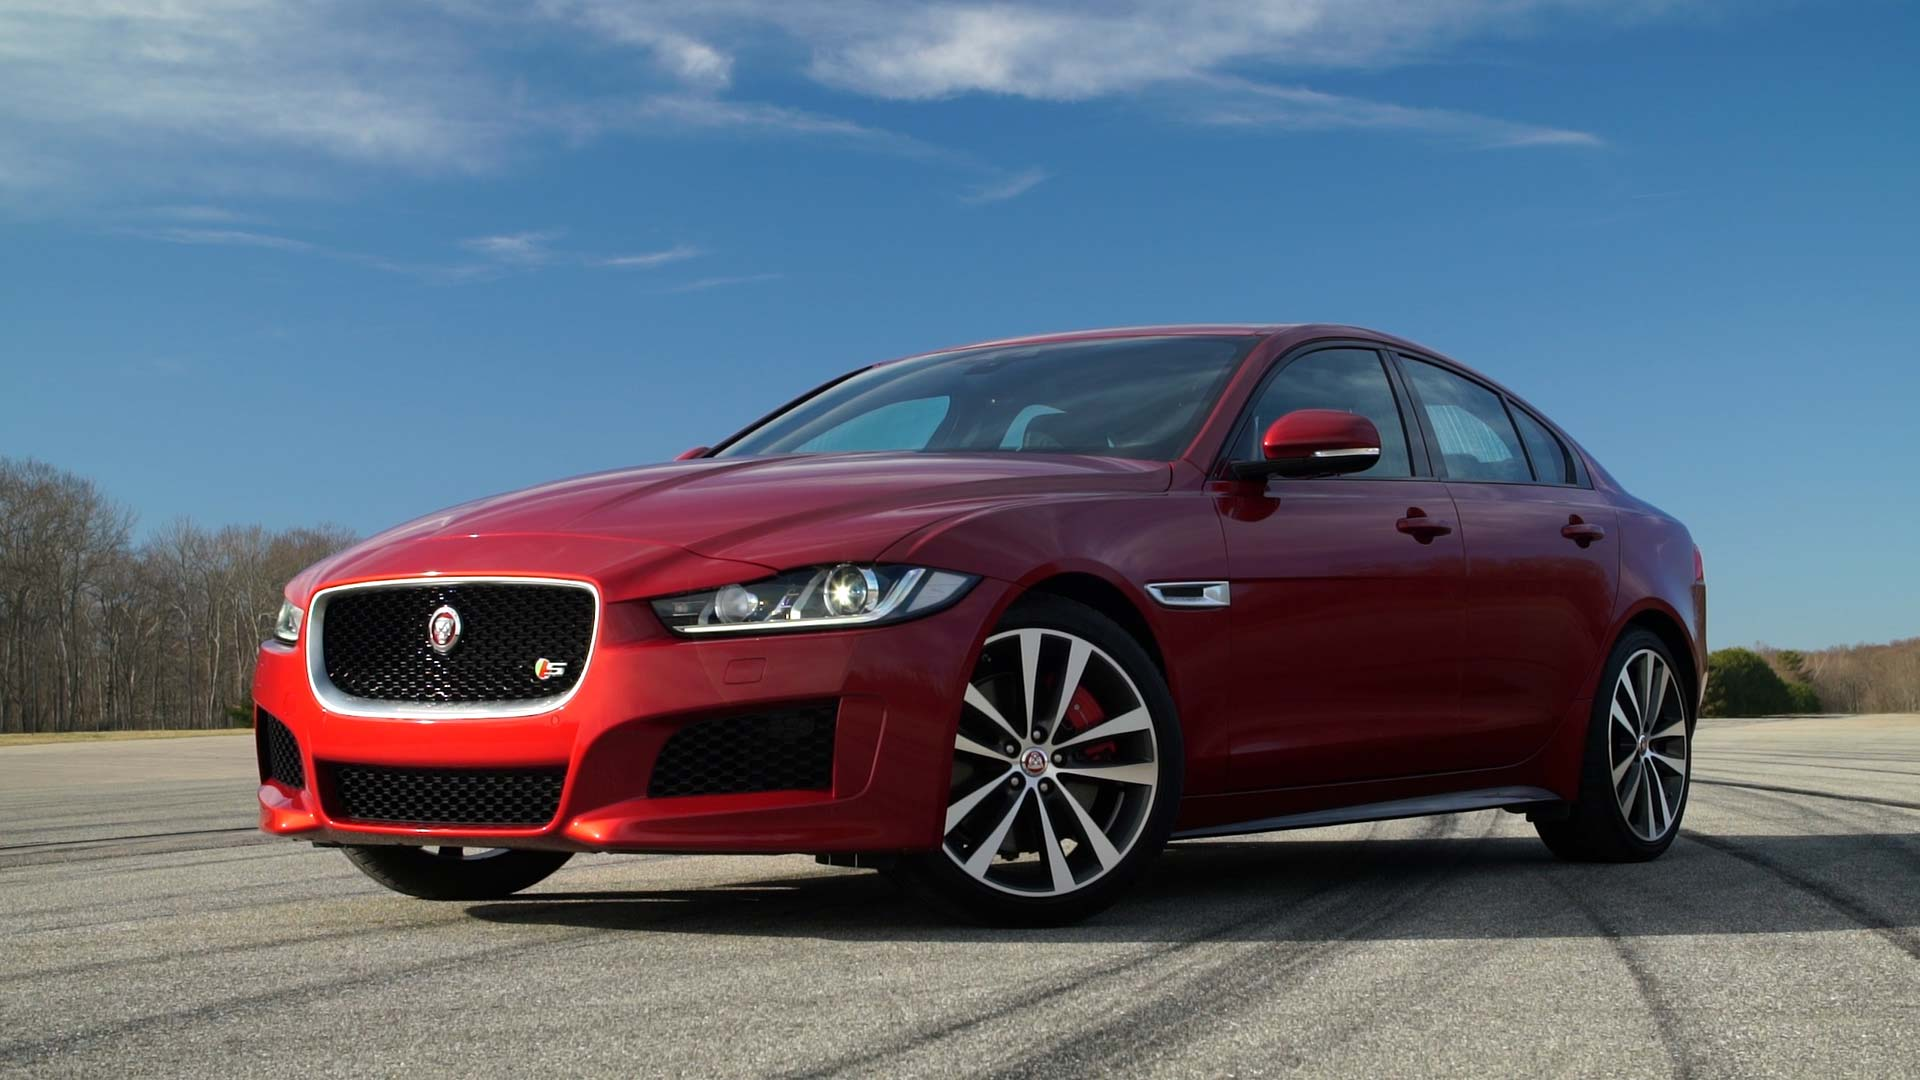 2017 jaguar xe consumer reports. Black Bedroom Furniture Sets. Home Design Ideas